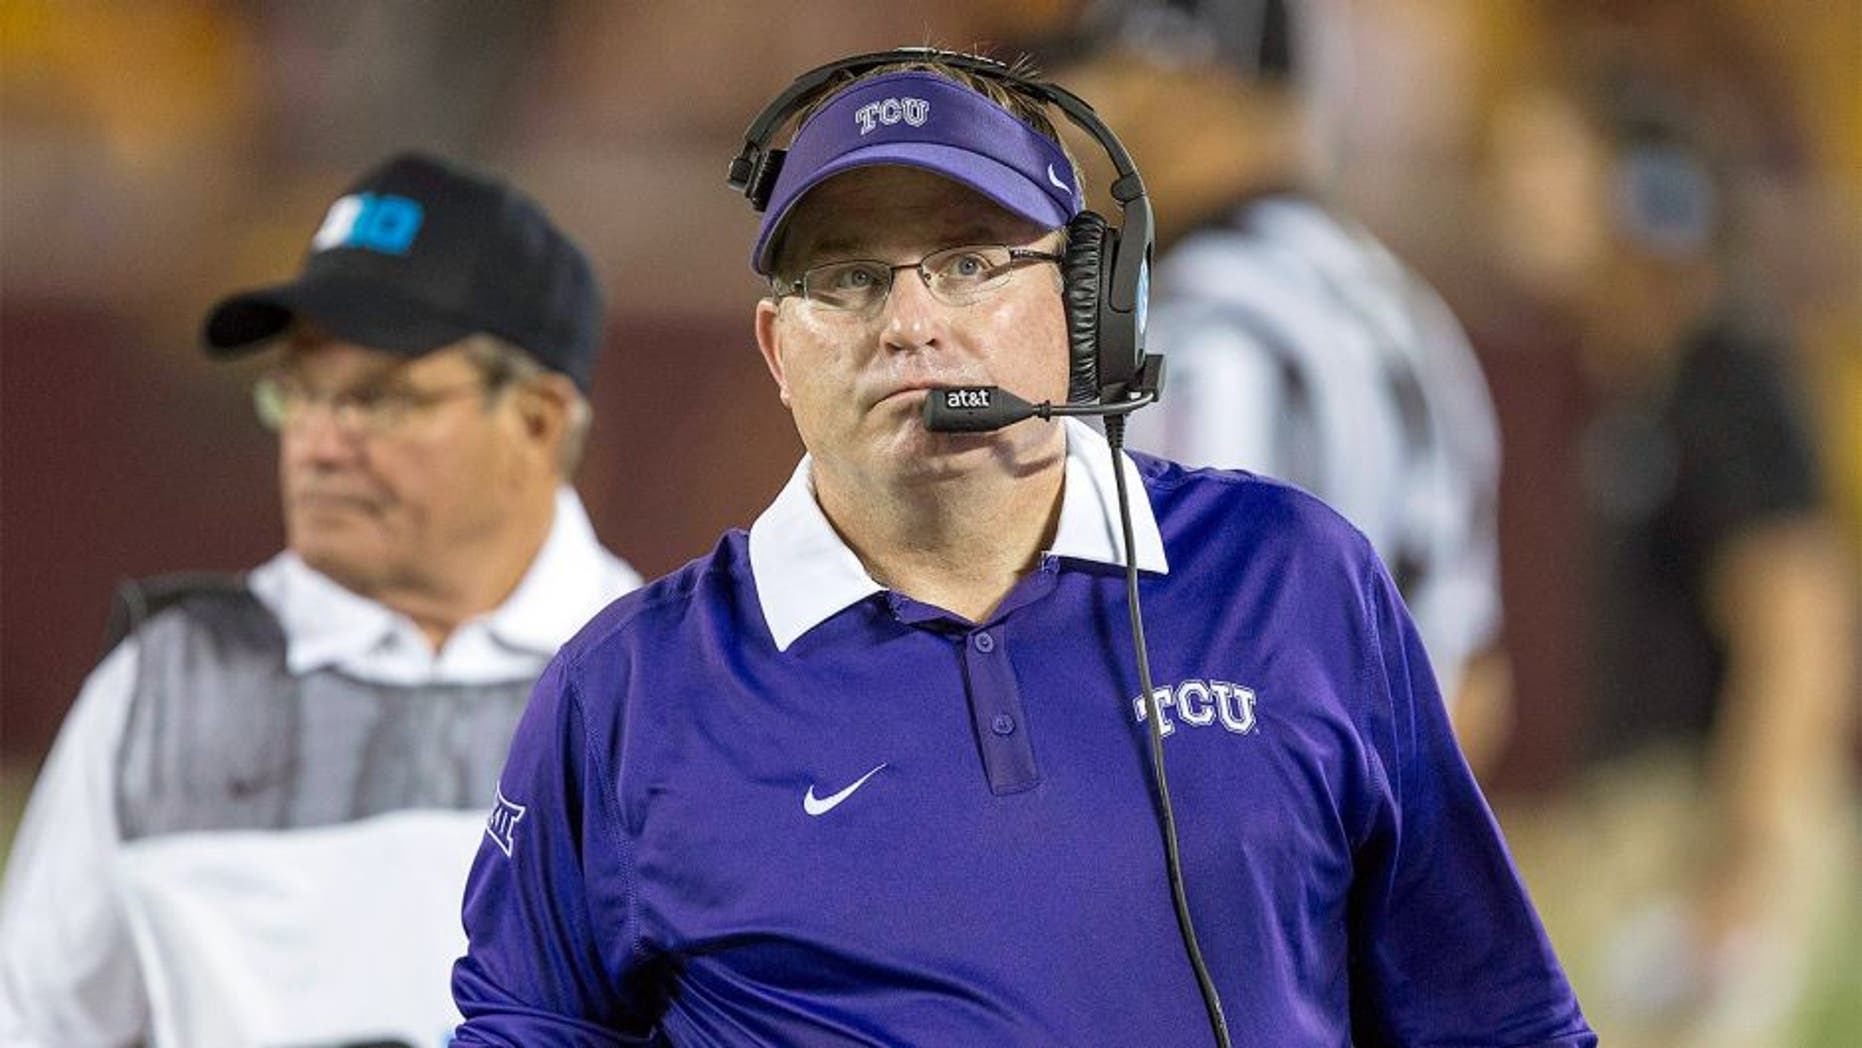 Sep 3, 2015; Minneapolis, MN, USA; TCU Horned Frogs head coach Gary Patterson looks on during the first half against the Minnesota Golden Gophers at TCF Bank Stadium. Mandatory Credit: Jesse Johnson-USA TODAY Sports